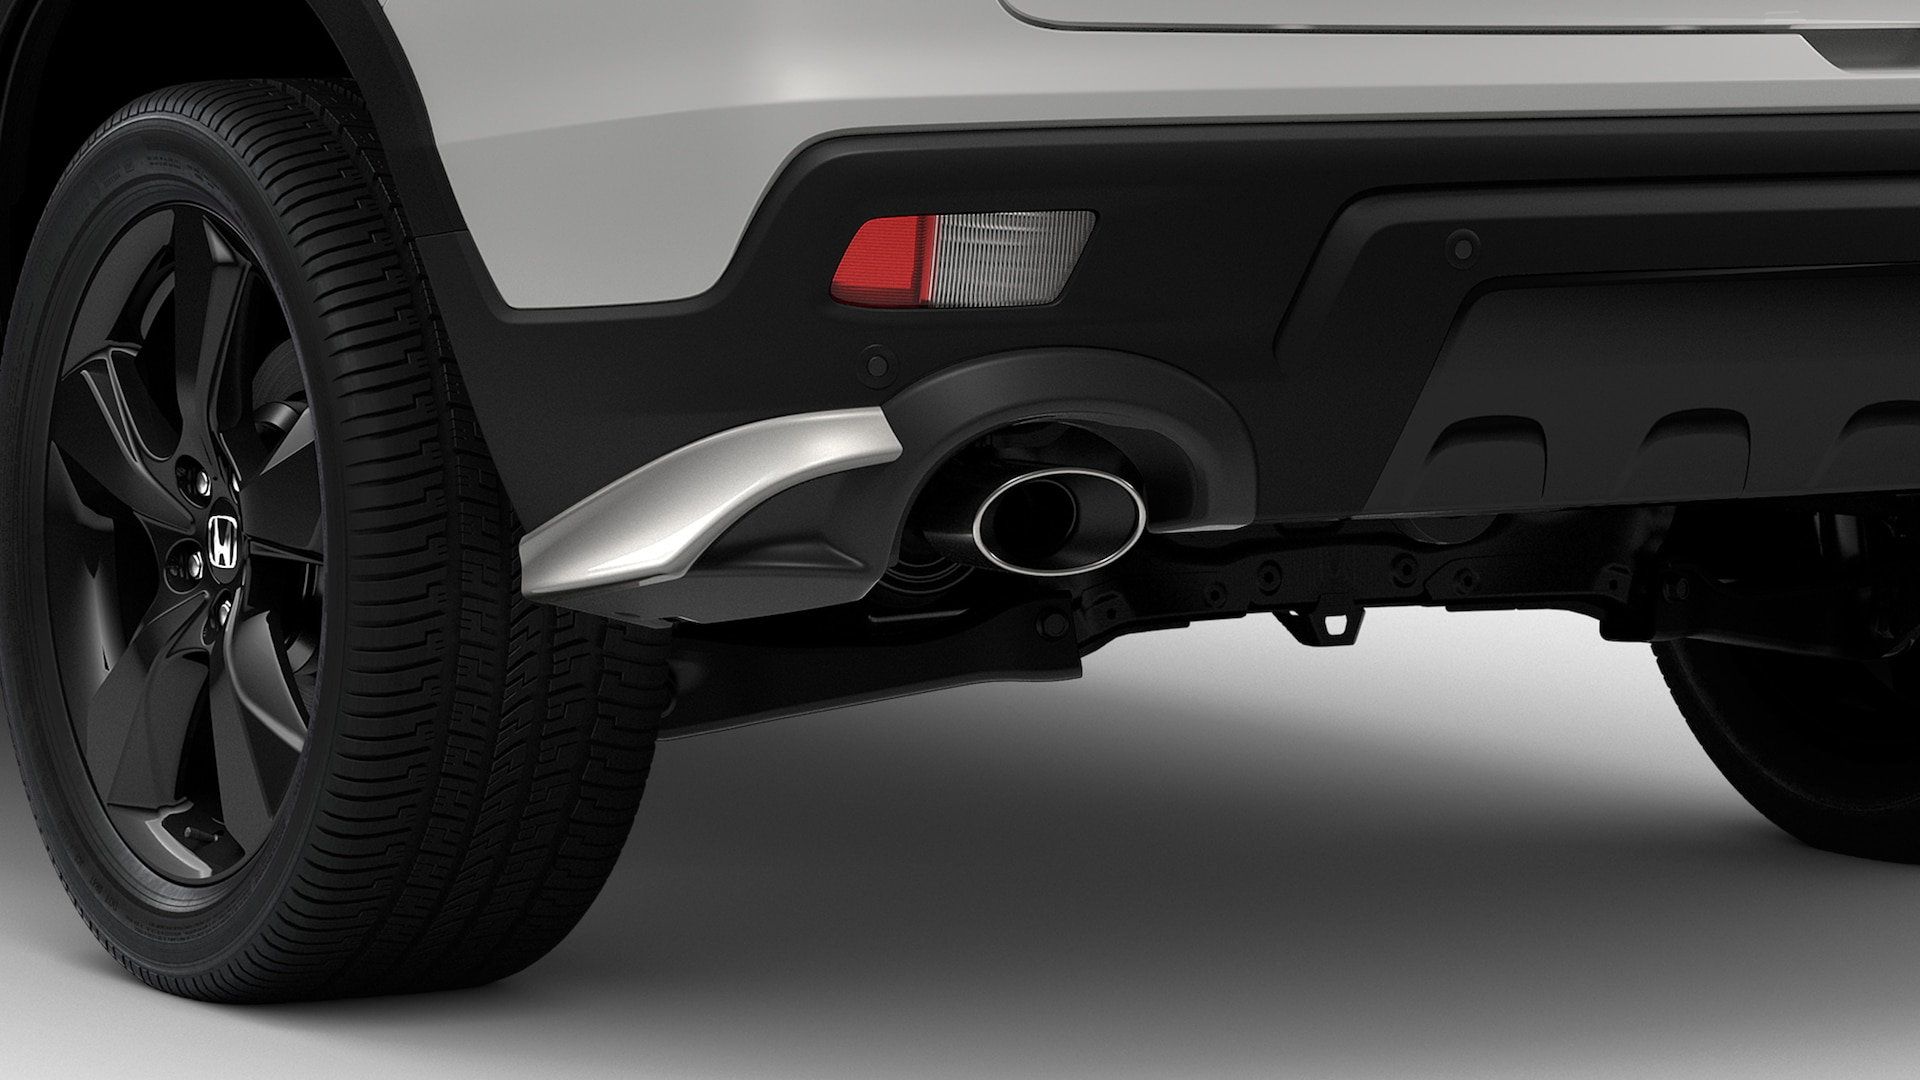 Detail of accessory rear underbody spoiler on the 2019 Honda Passport.